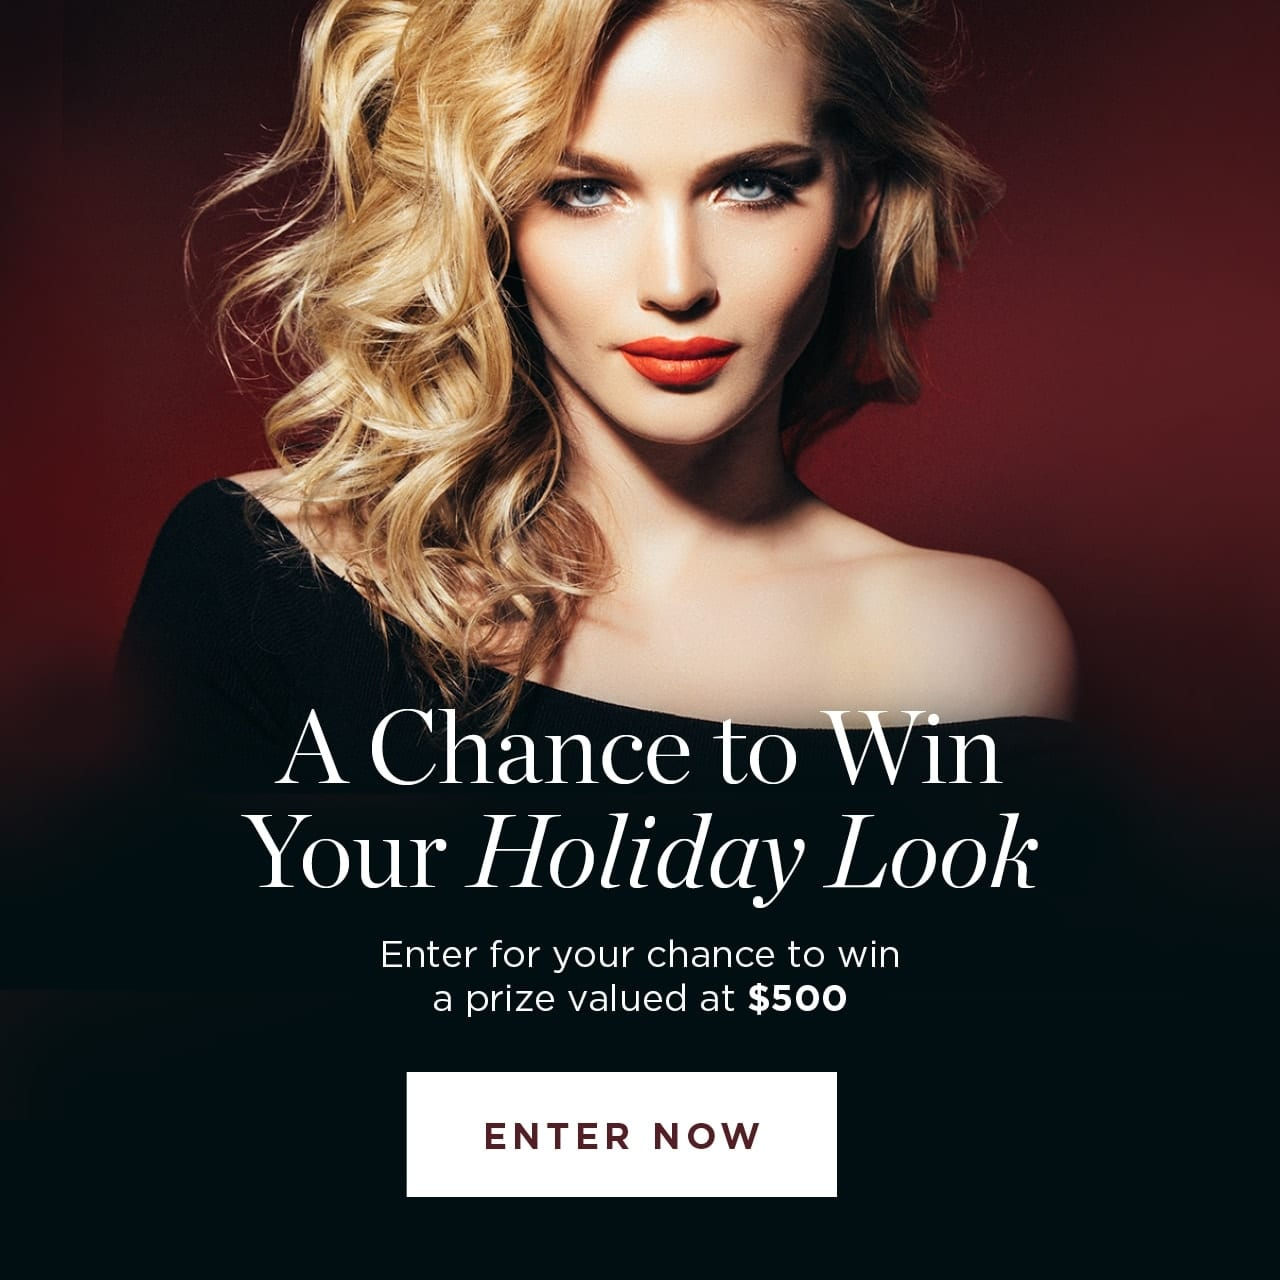 A Chance to Win Your Holiday Look. Enter for a chance to win a prize valued at $500. Enter Now.